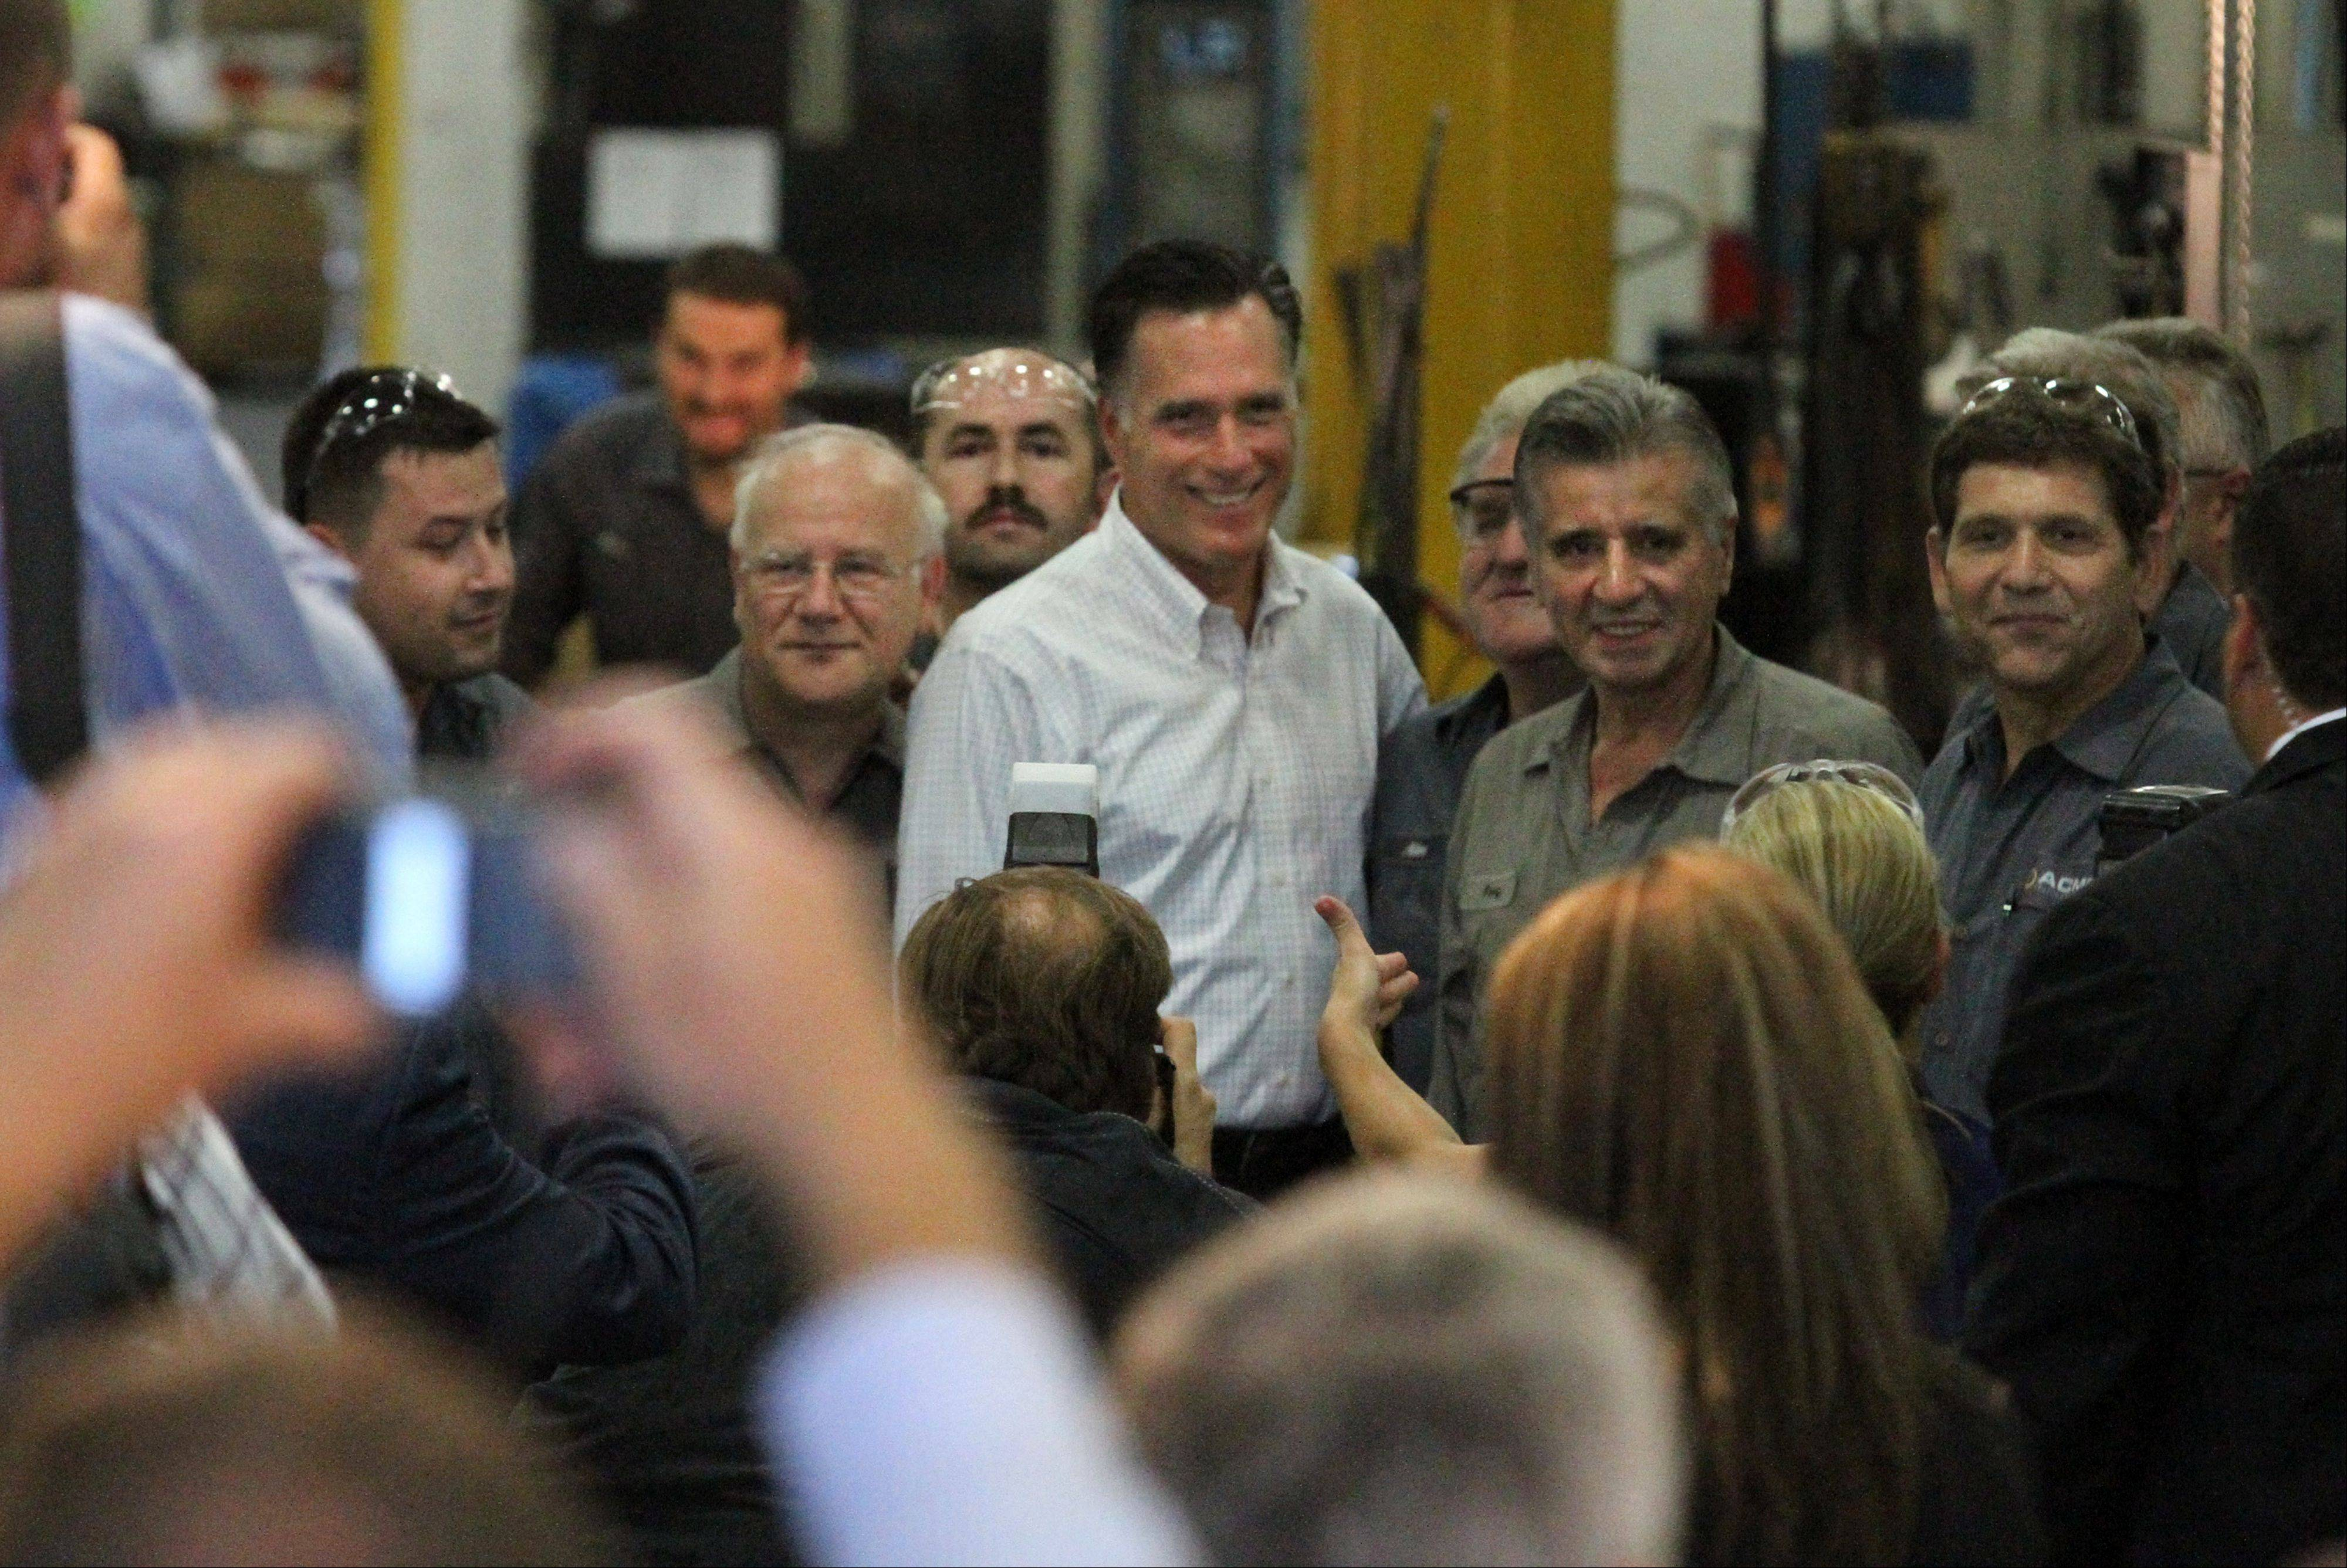 GOP Presidential candidate Mitt Romney poses for a photograph with workers at Acme Industries in Elk Grove Village on Tuesday, August 7.